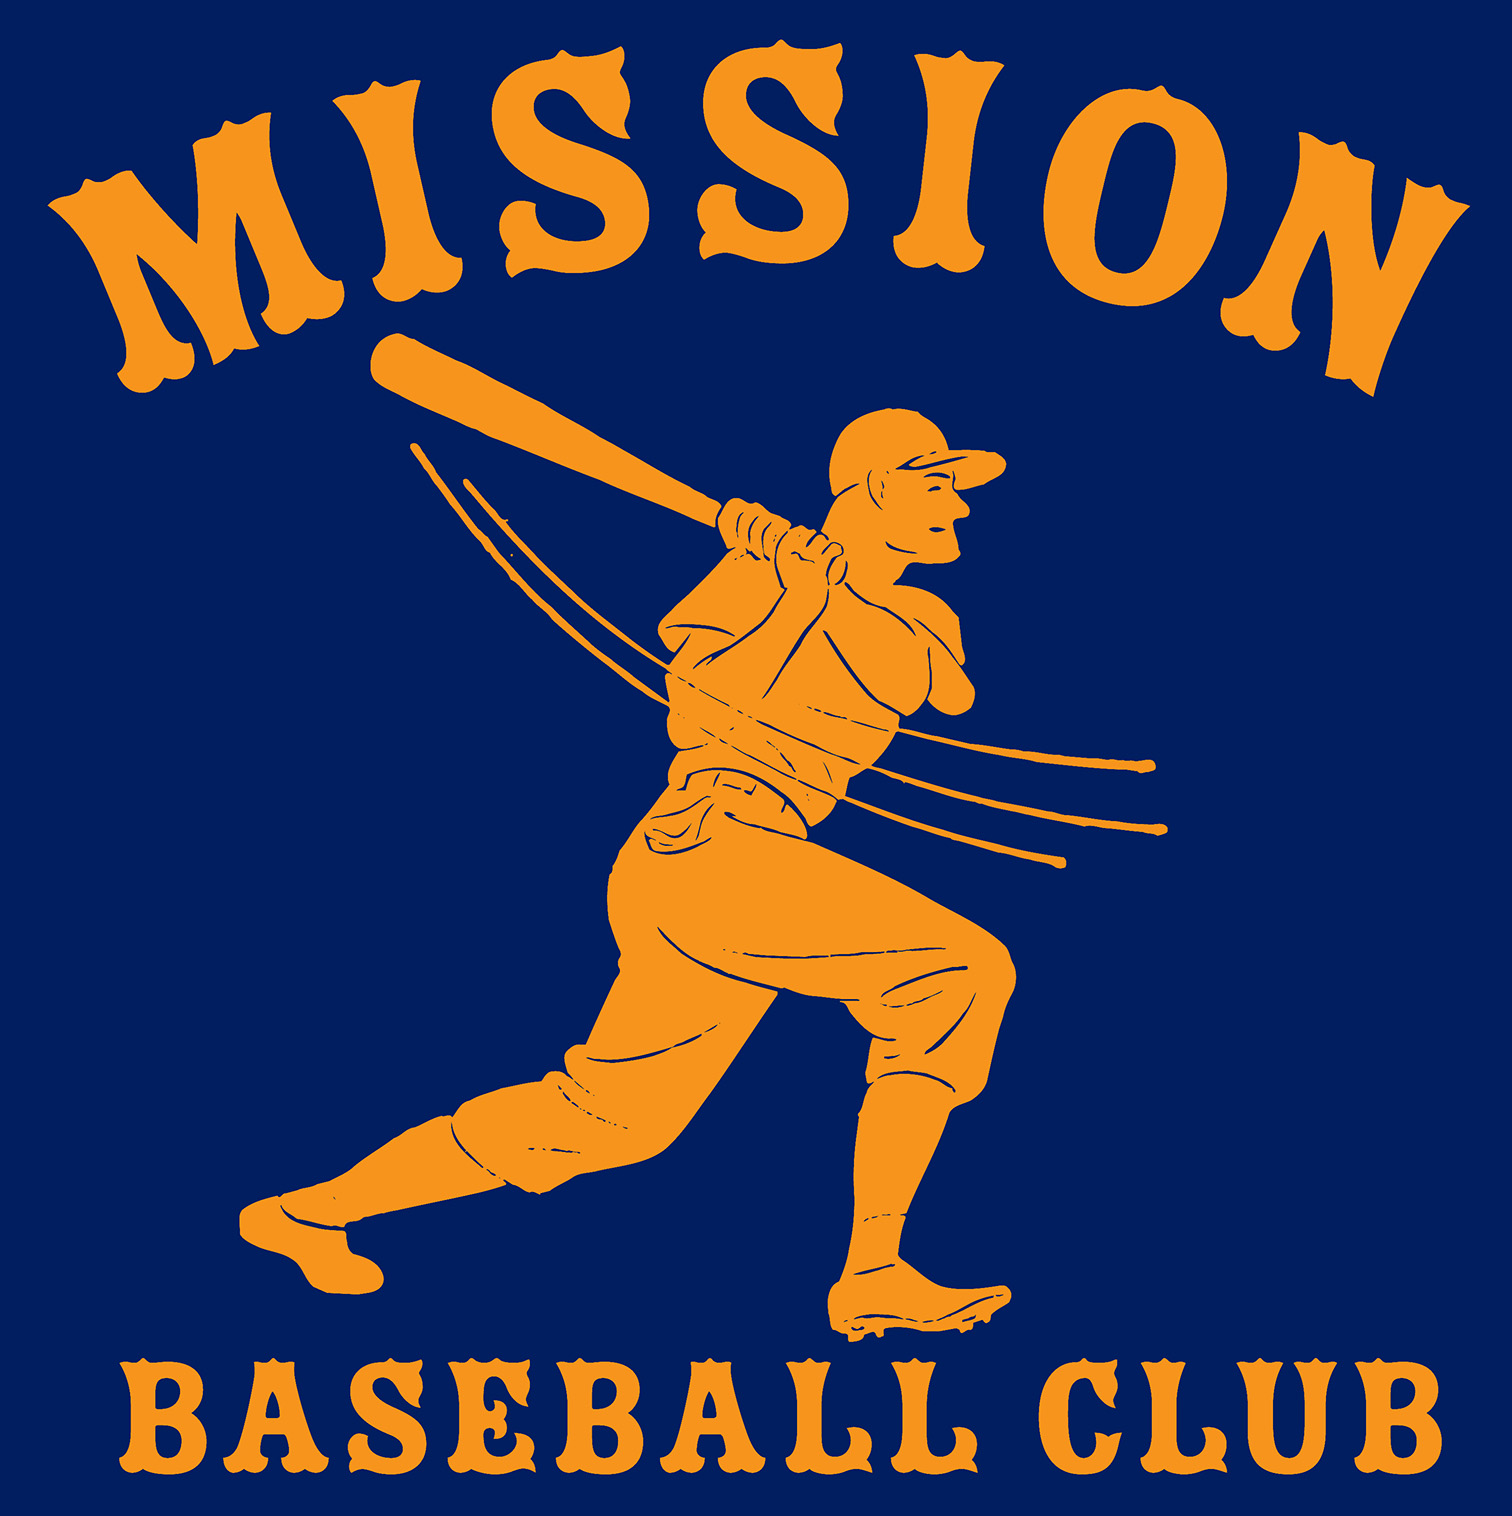 Mission Baseball Club